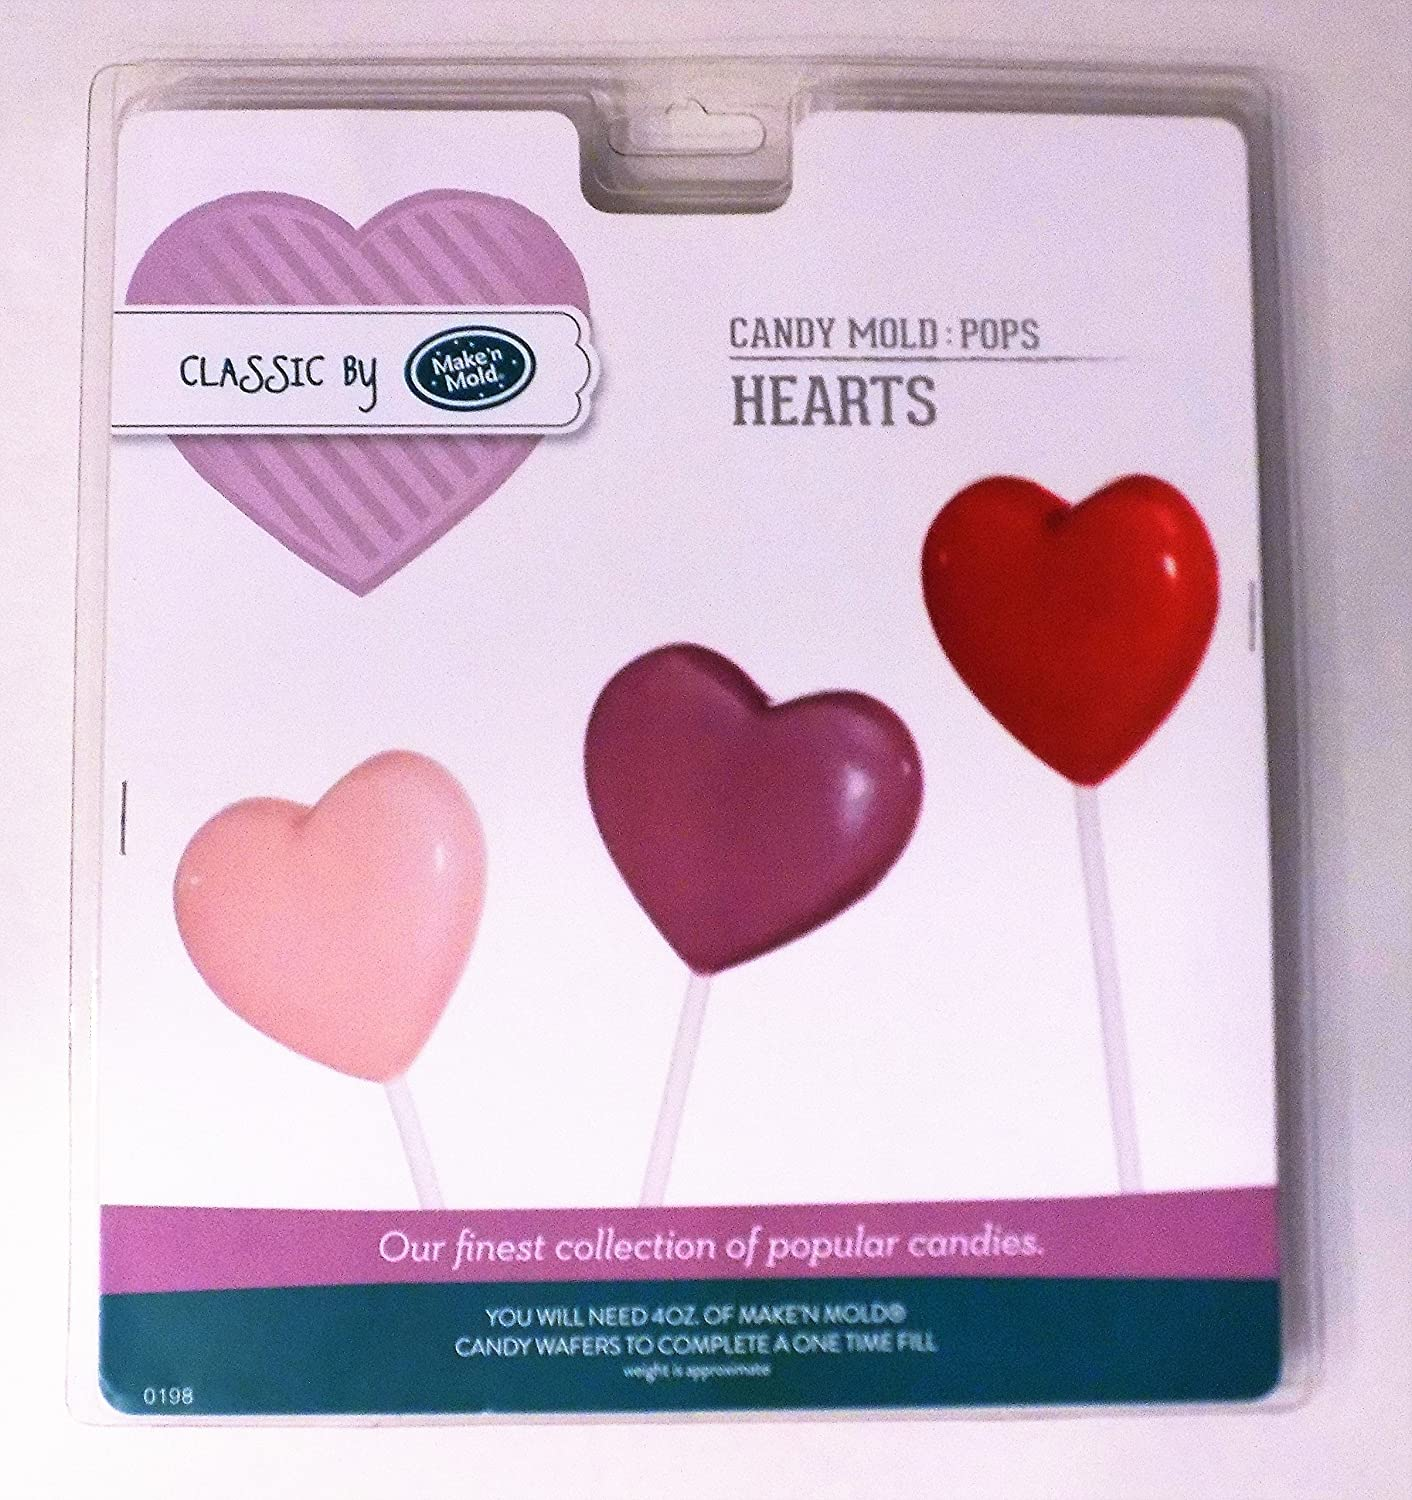 Valentine Heart Lollipop Making Bundle - Heart Candy Mold -2 Wilton Candy Melts Color Red and Pink- with Bags, Sticks and Ties: Amazon.com: Grocery ...